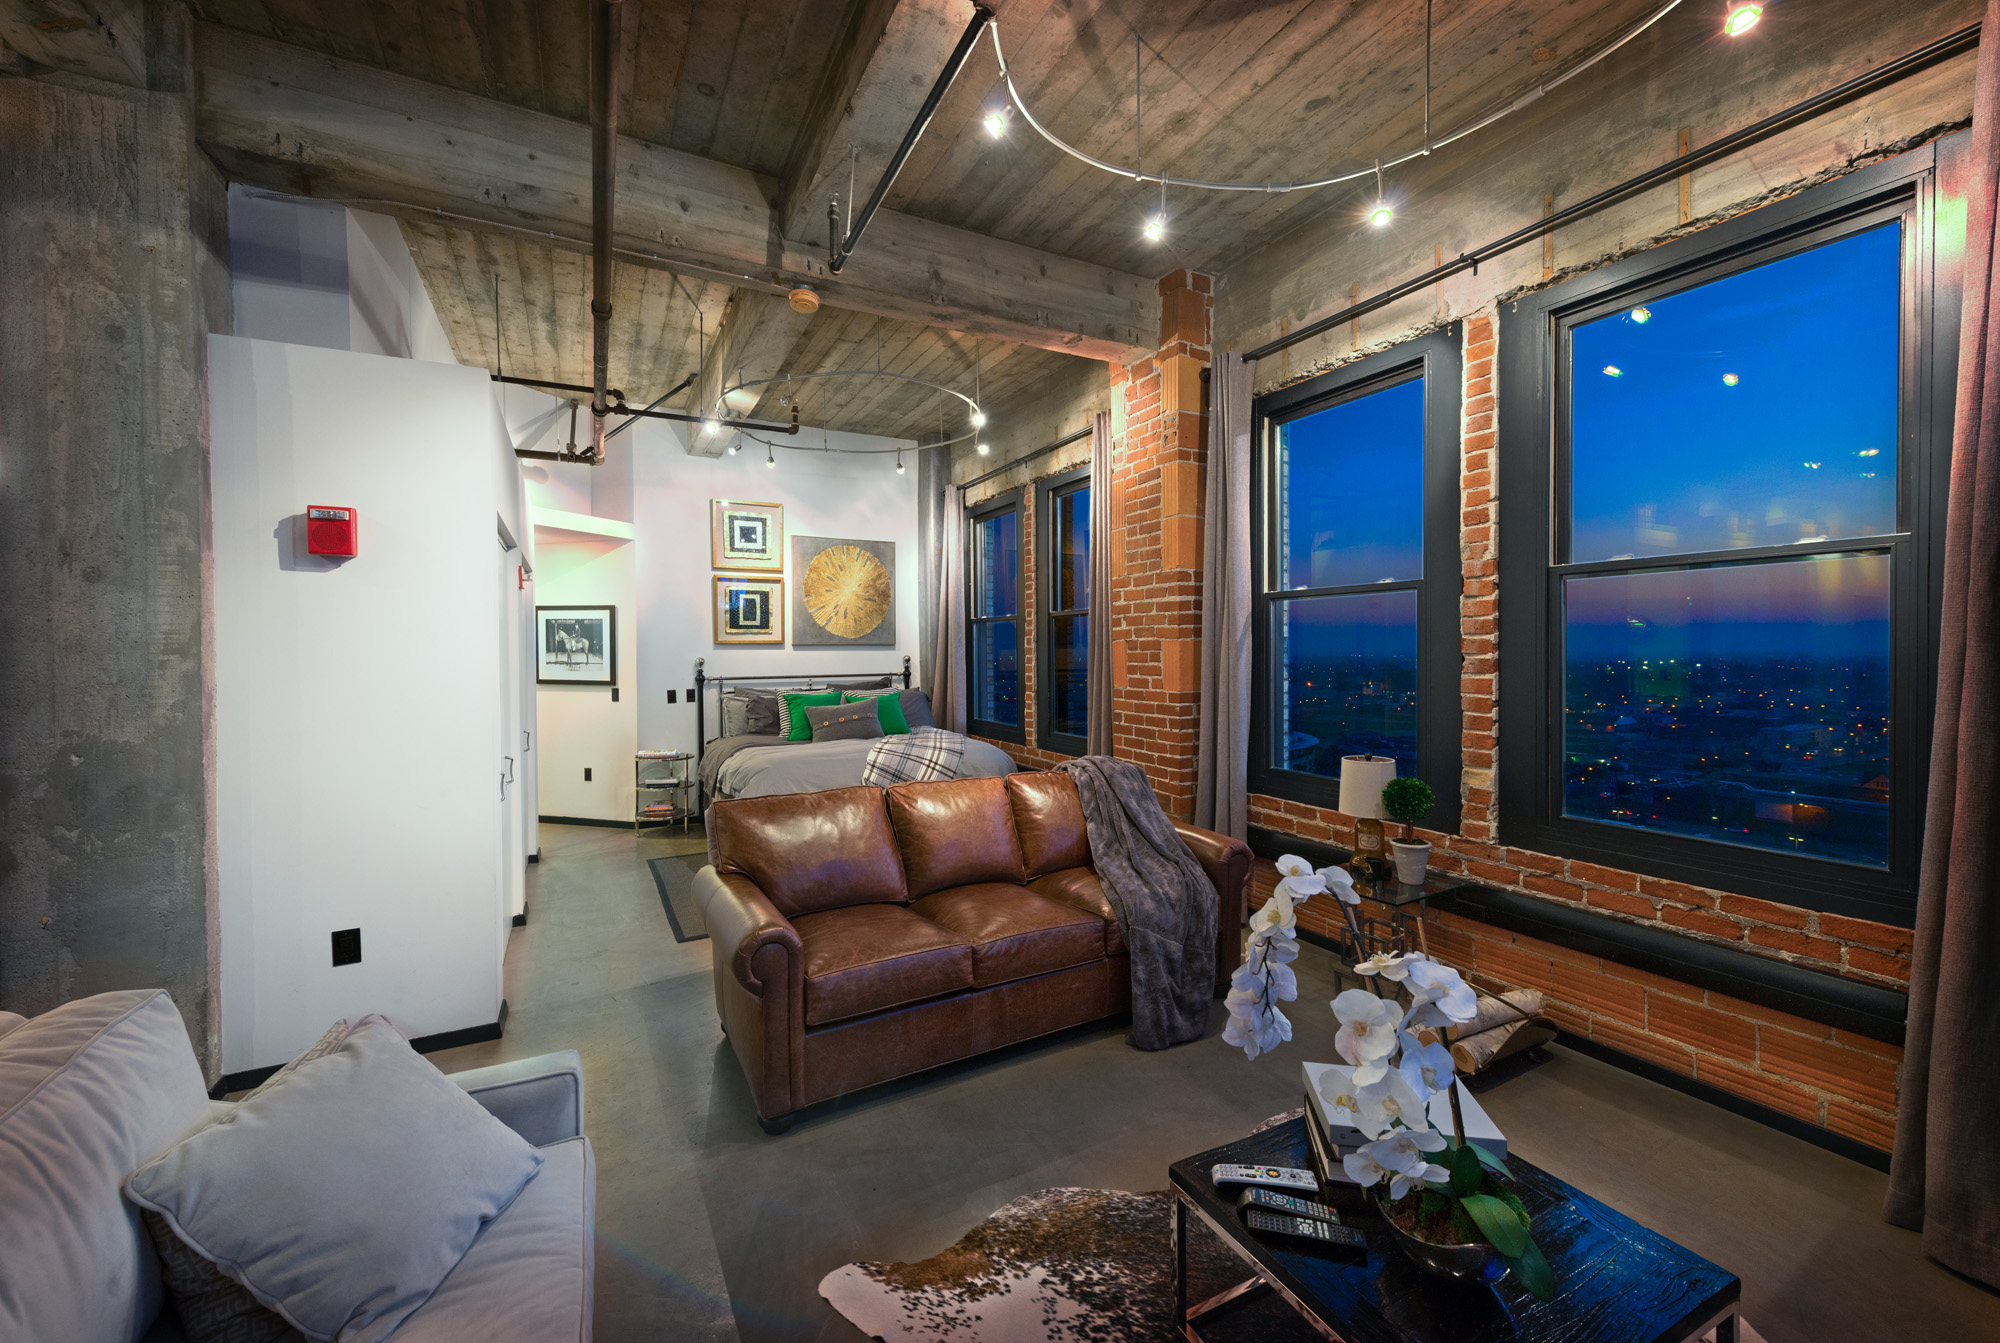 Lofts Are Being Offered For Lease More Information And A Private Tour Please Contact The Management At 559 441 7777